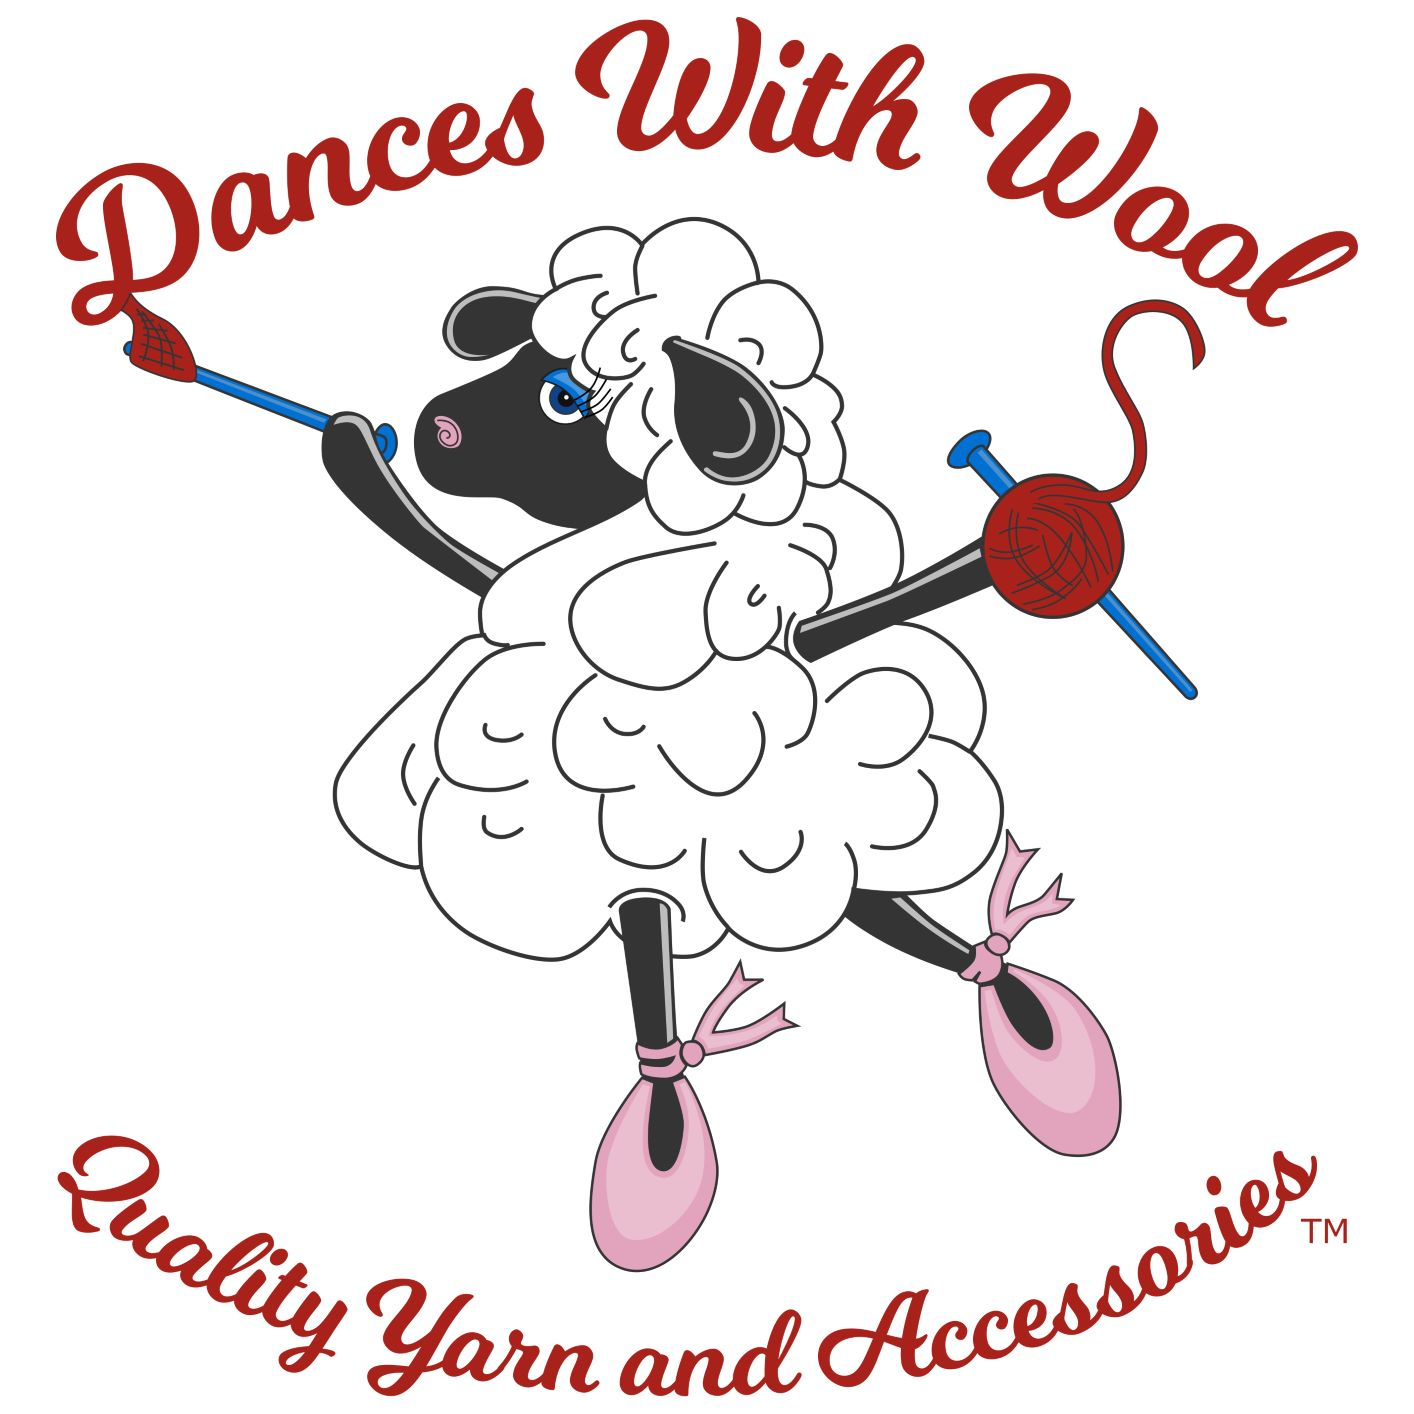 Dances With Wool